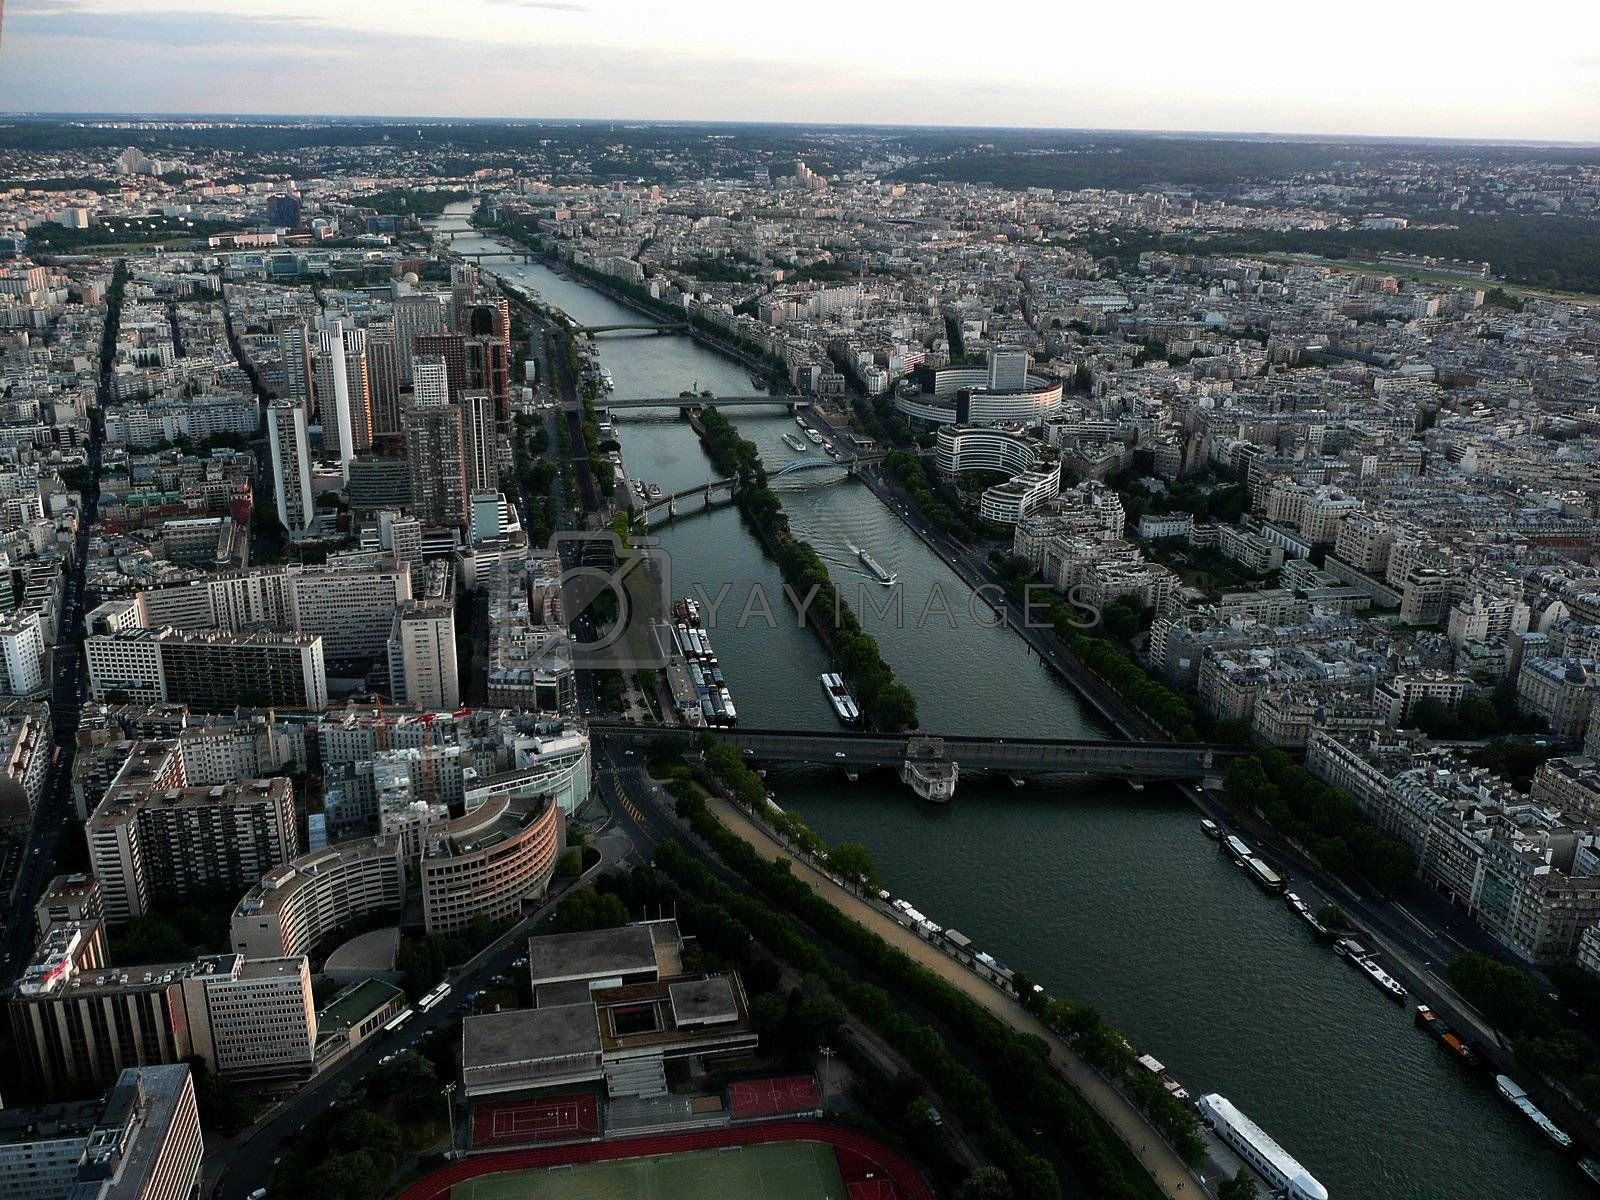 Panoramic View of Paris from Tour Eiffel, France